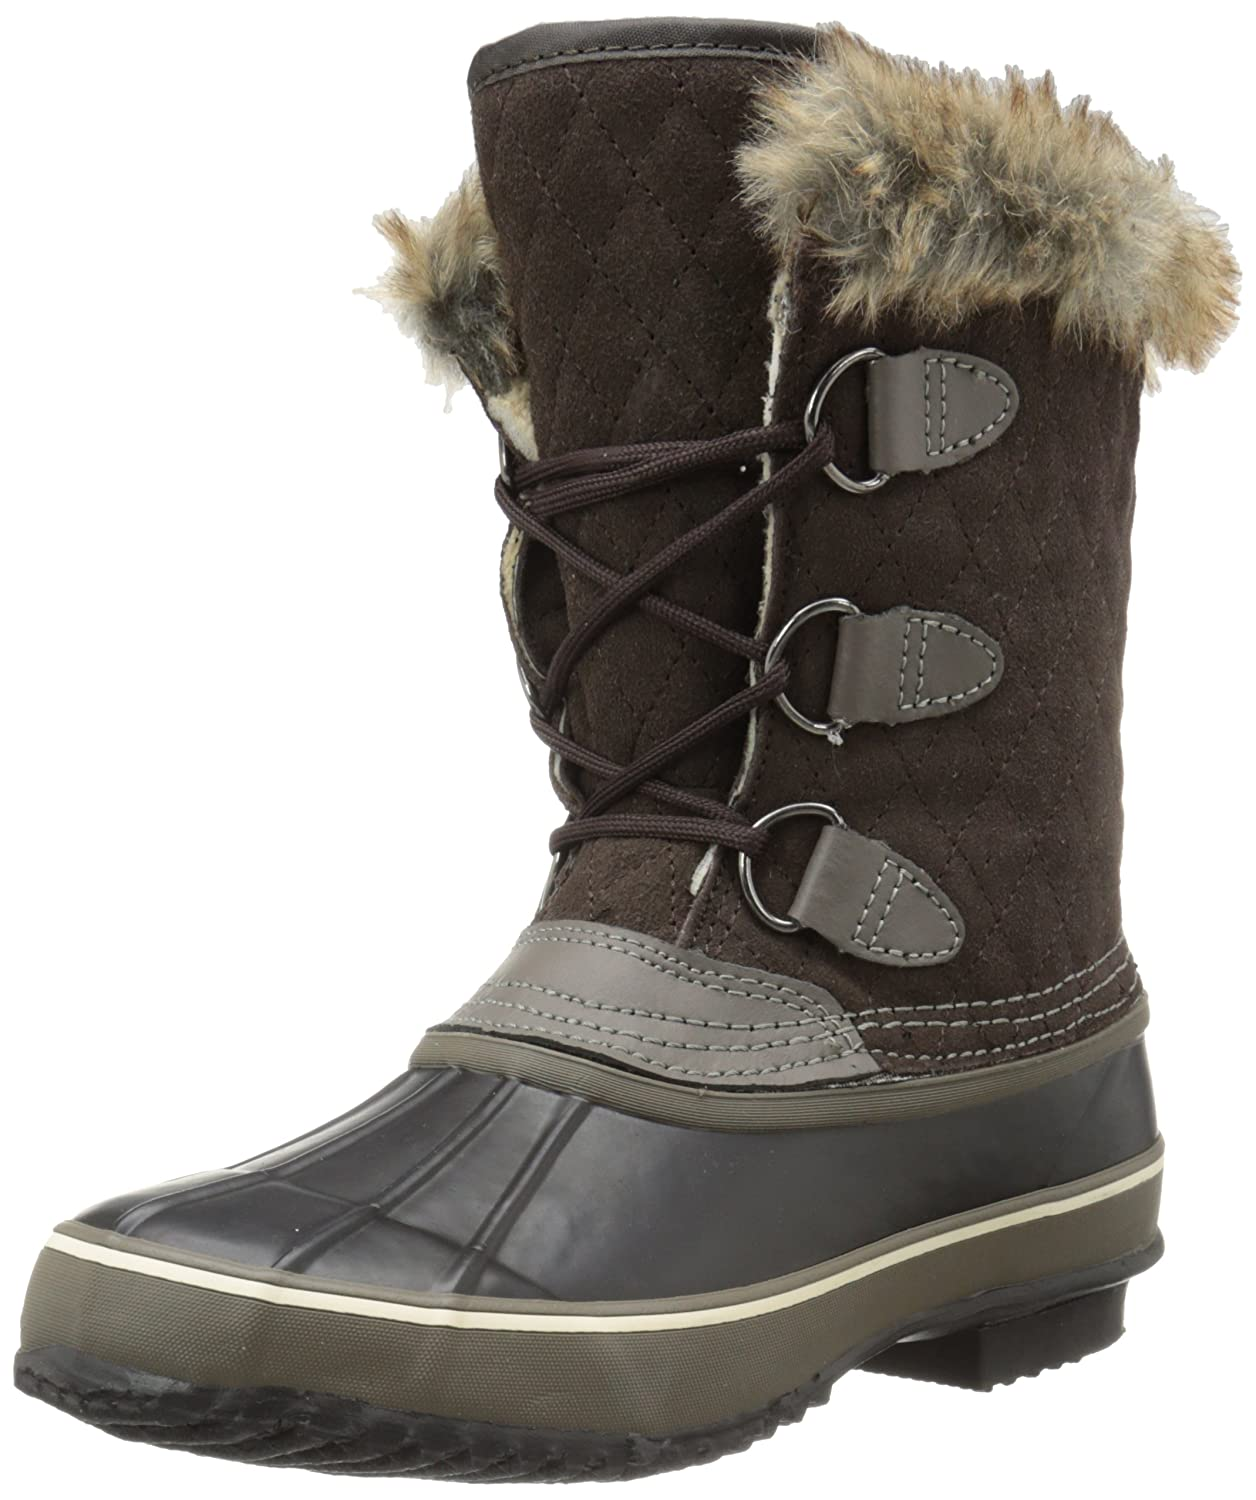 Northside Women's Mont Blanc Waterproof Snow Boot B00I5G4ACK 10 B(M) US|Dark Brown